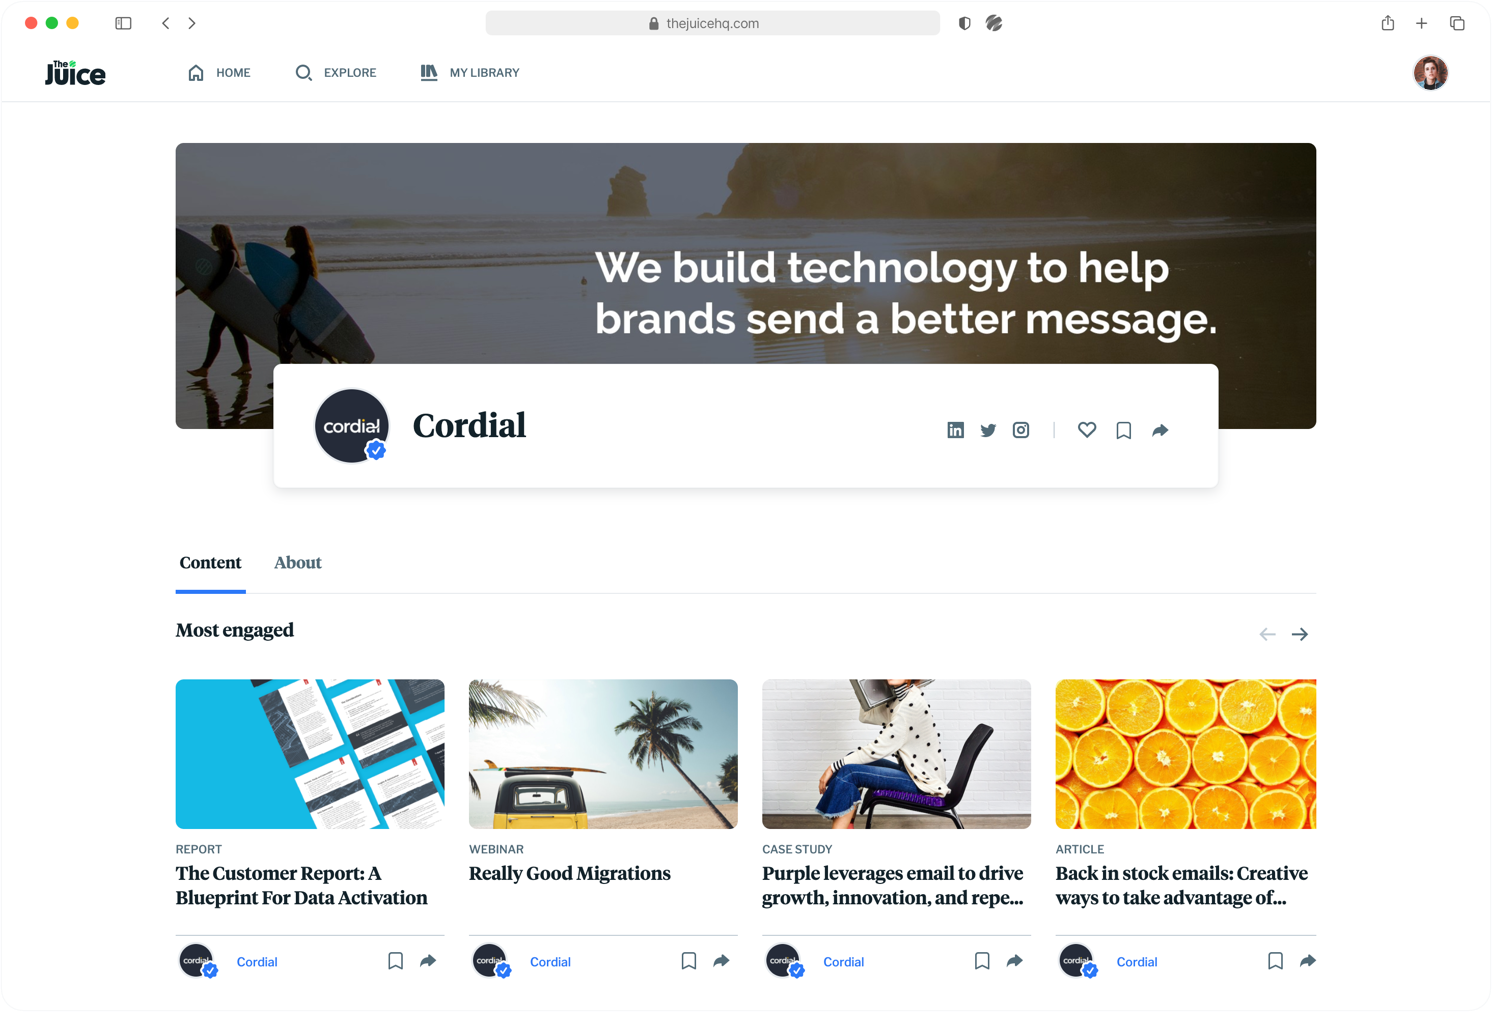 Product screen of The Juice - Brand landing page